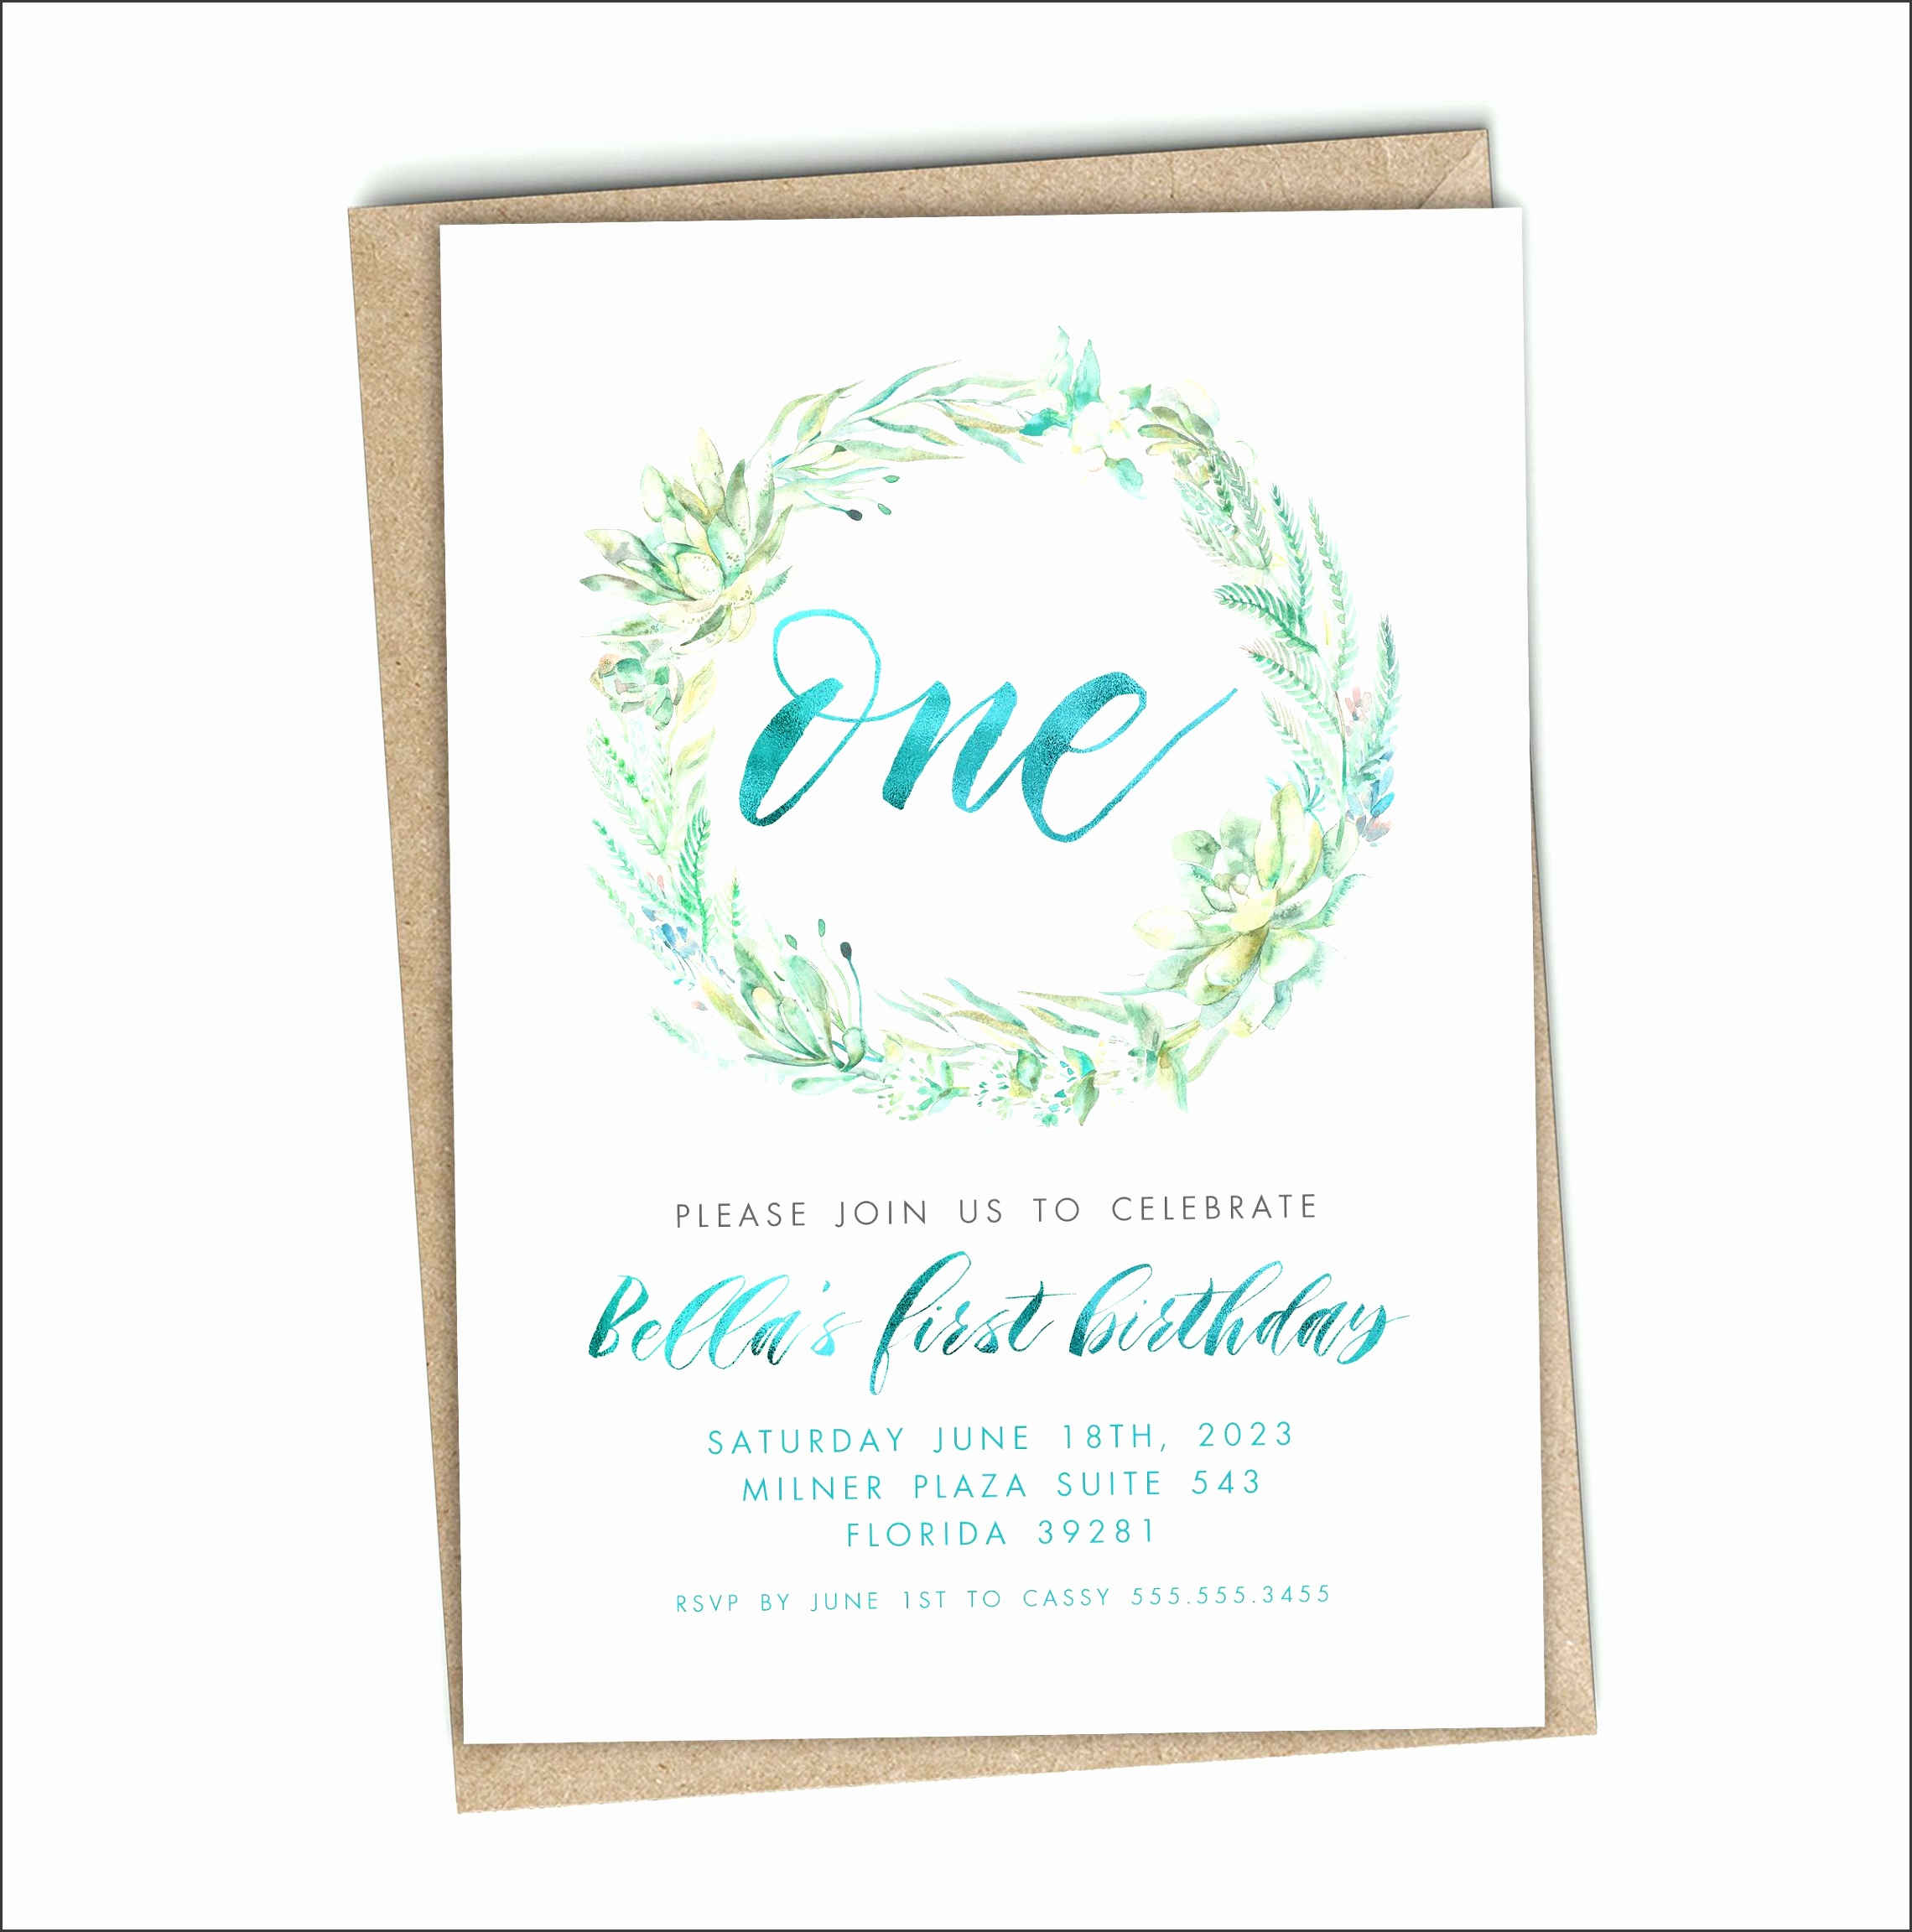 First birthday invitation template girl gold watercolor flowers invitation design first